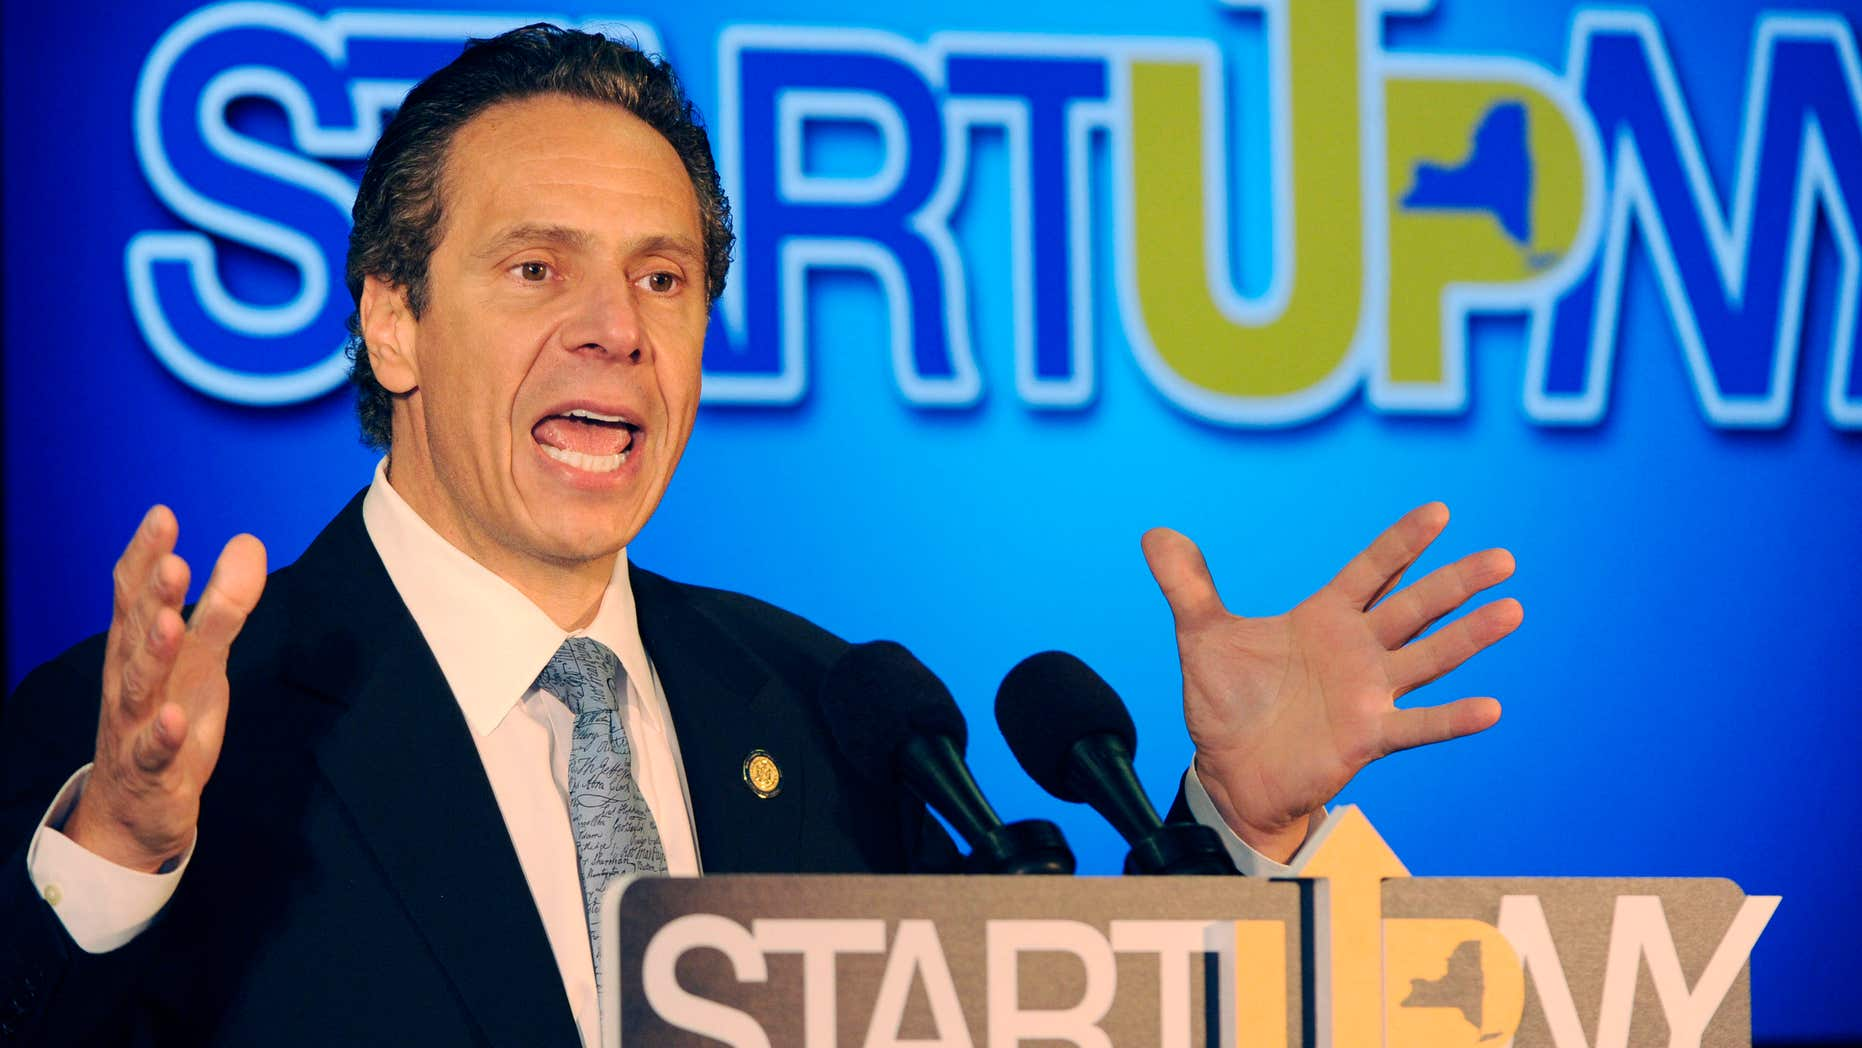 FILE - In this July 28, 2014 file photo, New York Gov. Andrew Cuomo speaks about ongoing economic development in western New York at the University of Buffalo's South campus in Buffalo, N.Y.